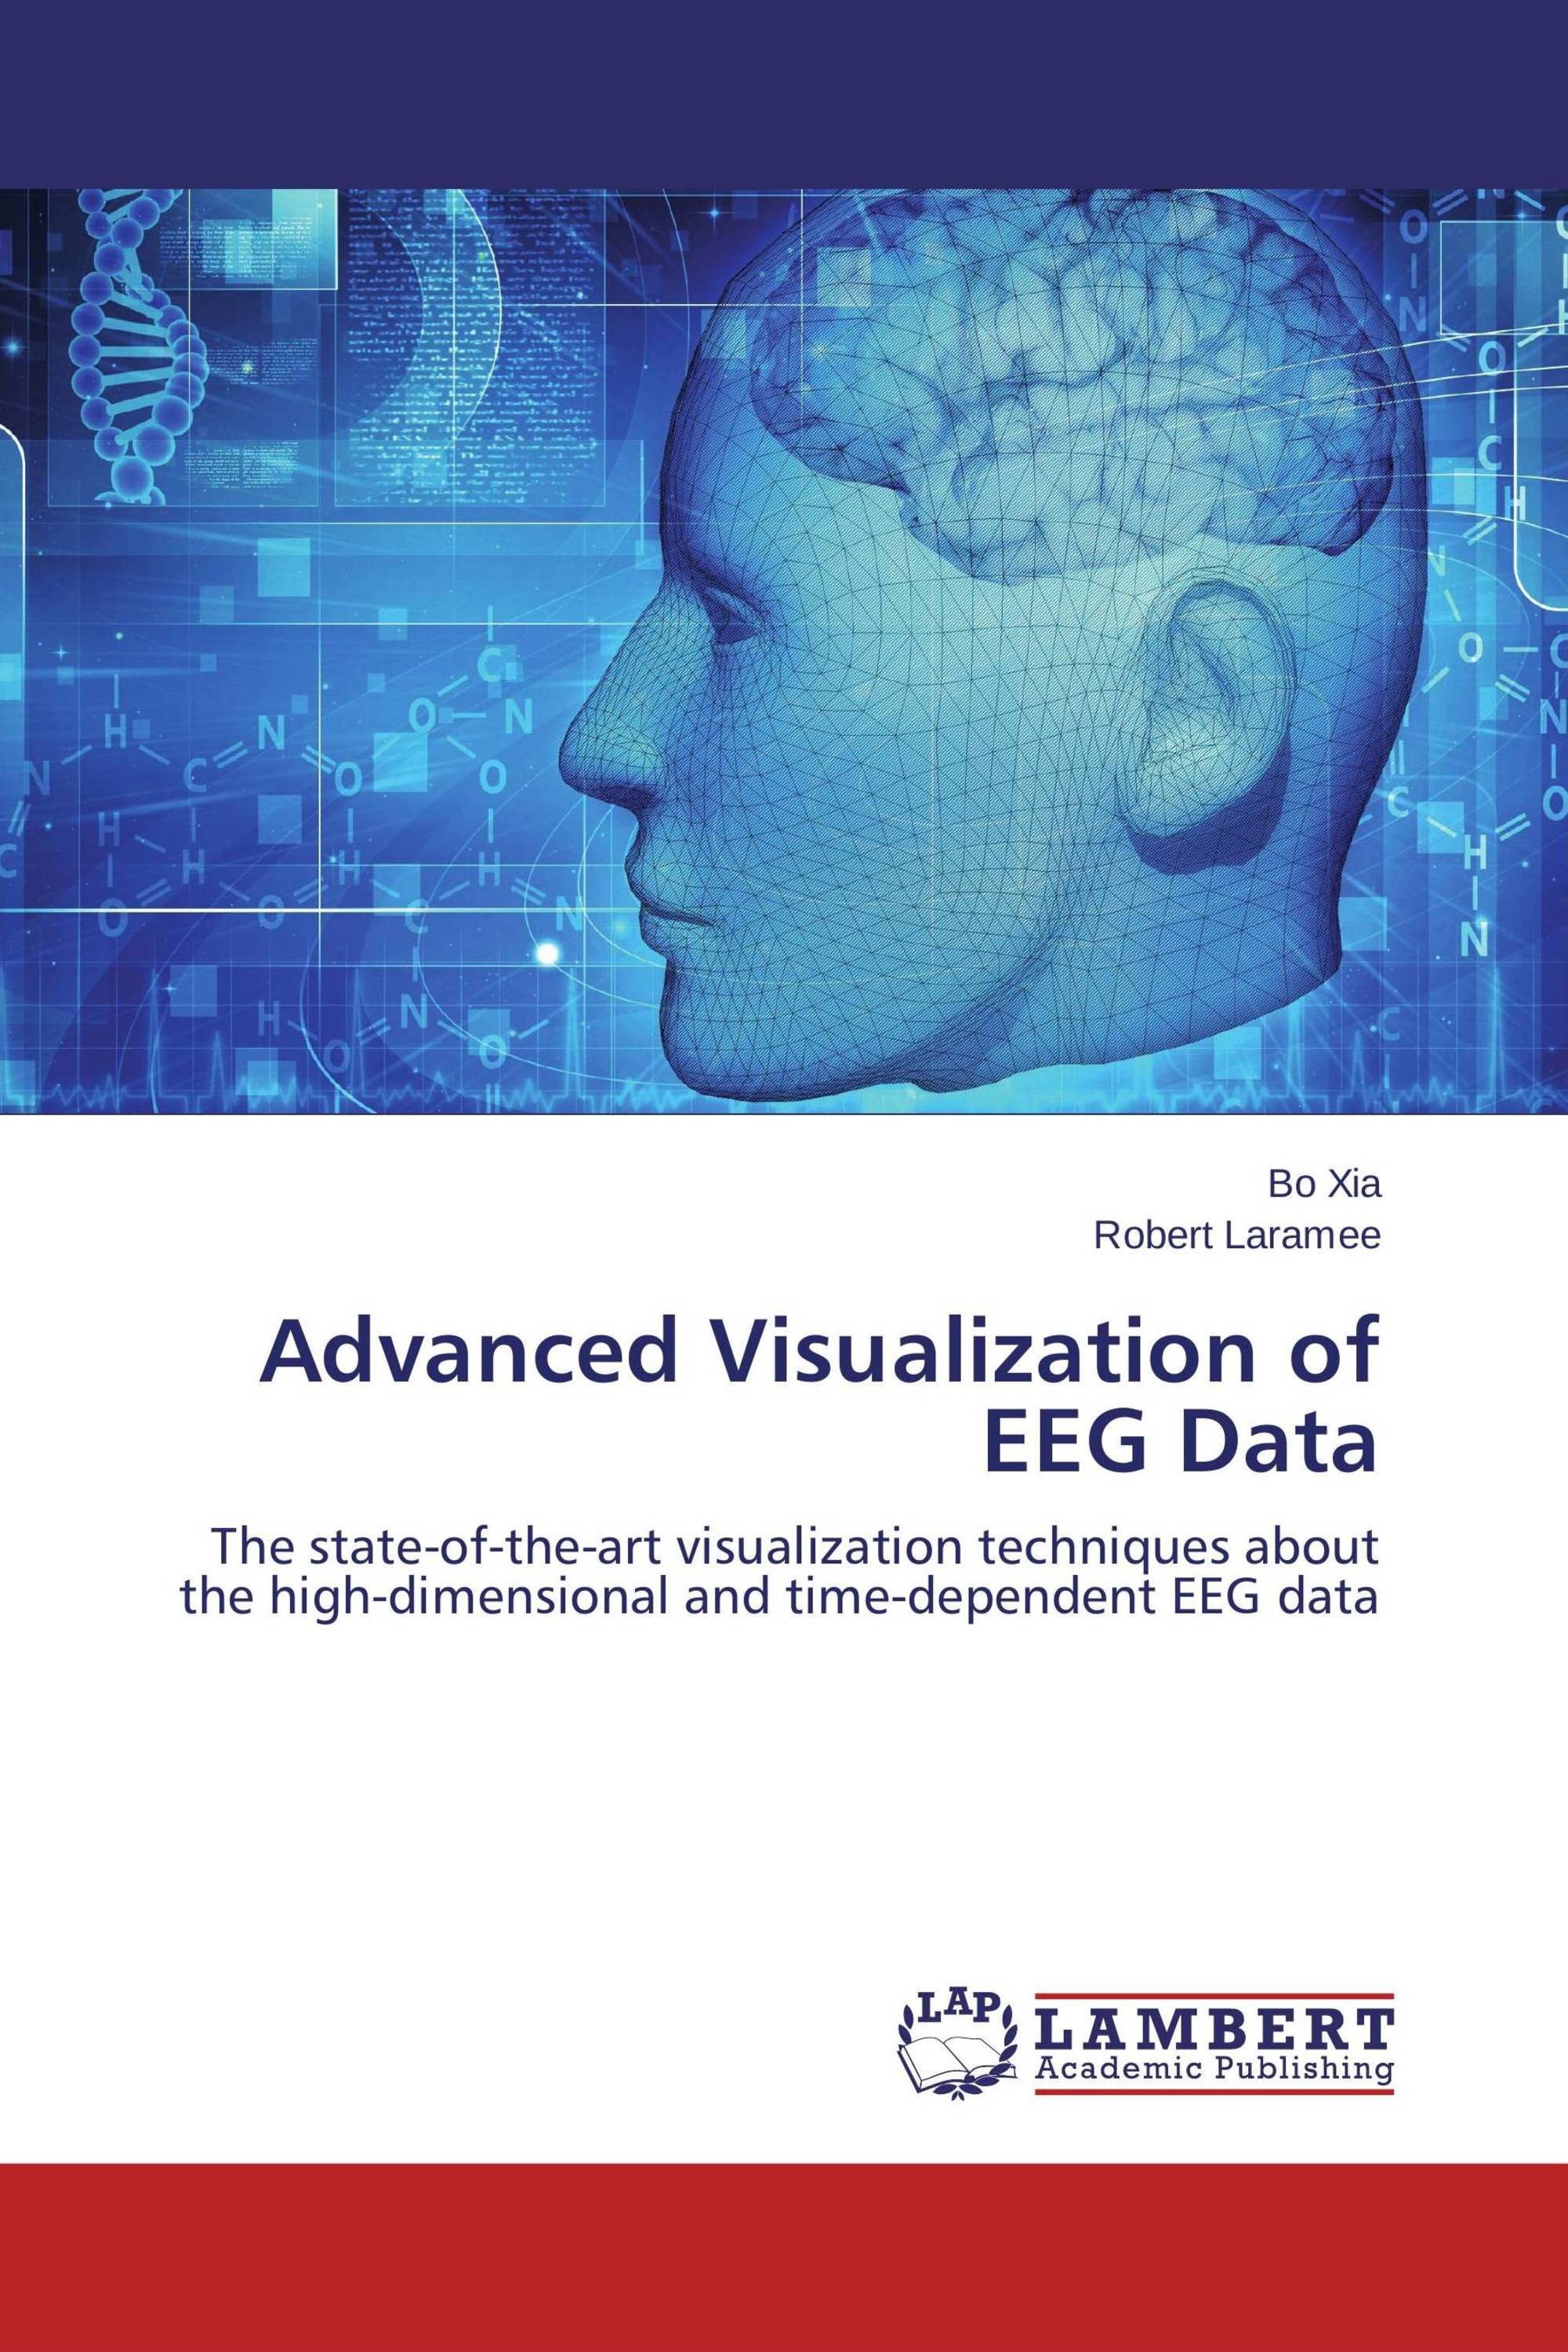 Advanced Visualization of EEG Data